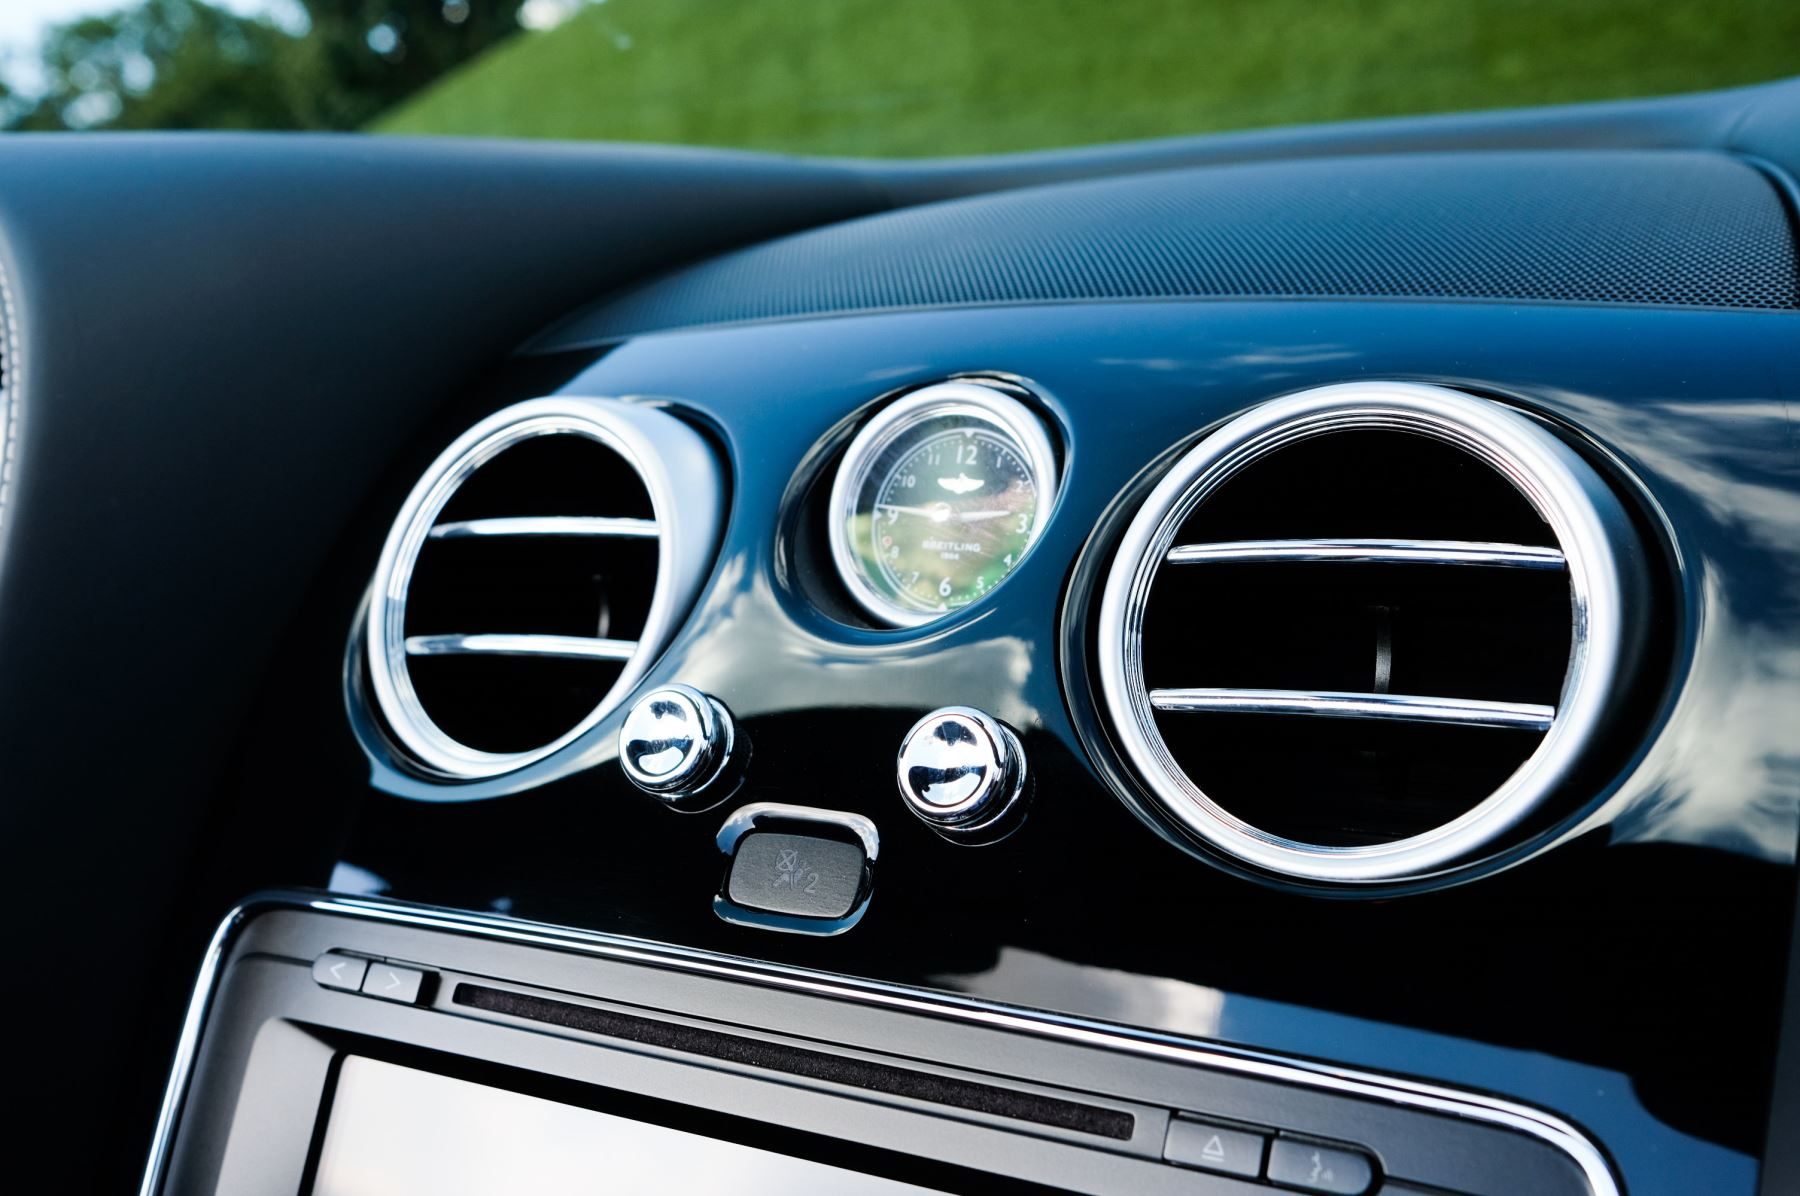 Bentley Continental GTC 4.0 V8 S Mulliner Driving Spec - Ventilated Front Seats with Massage Function image 22